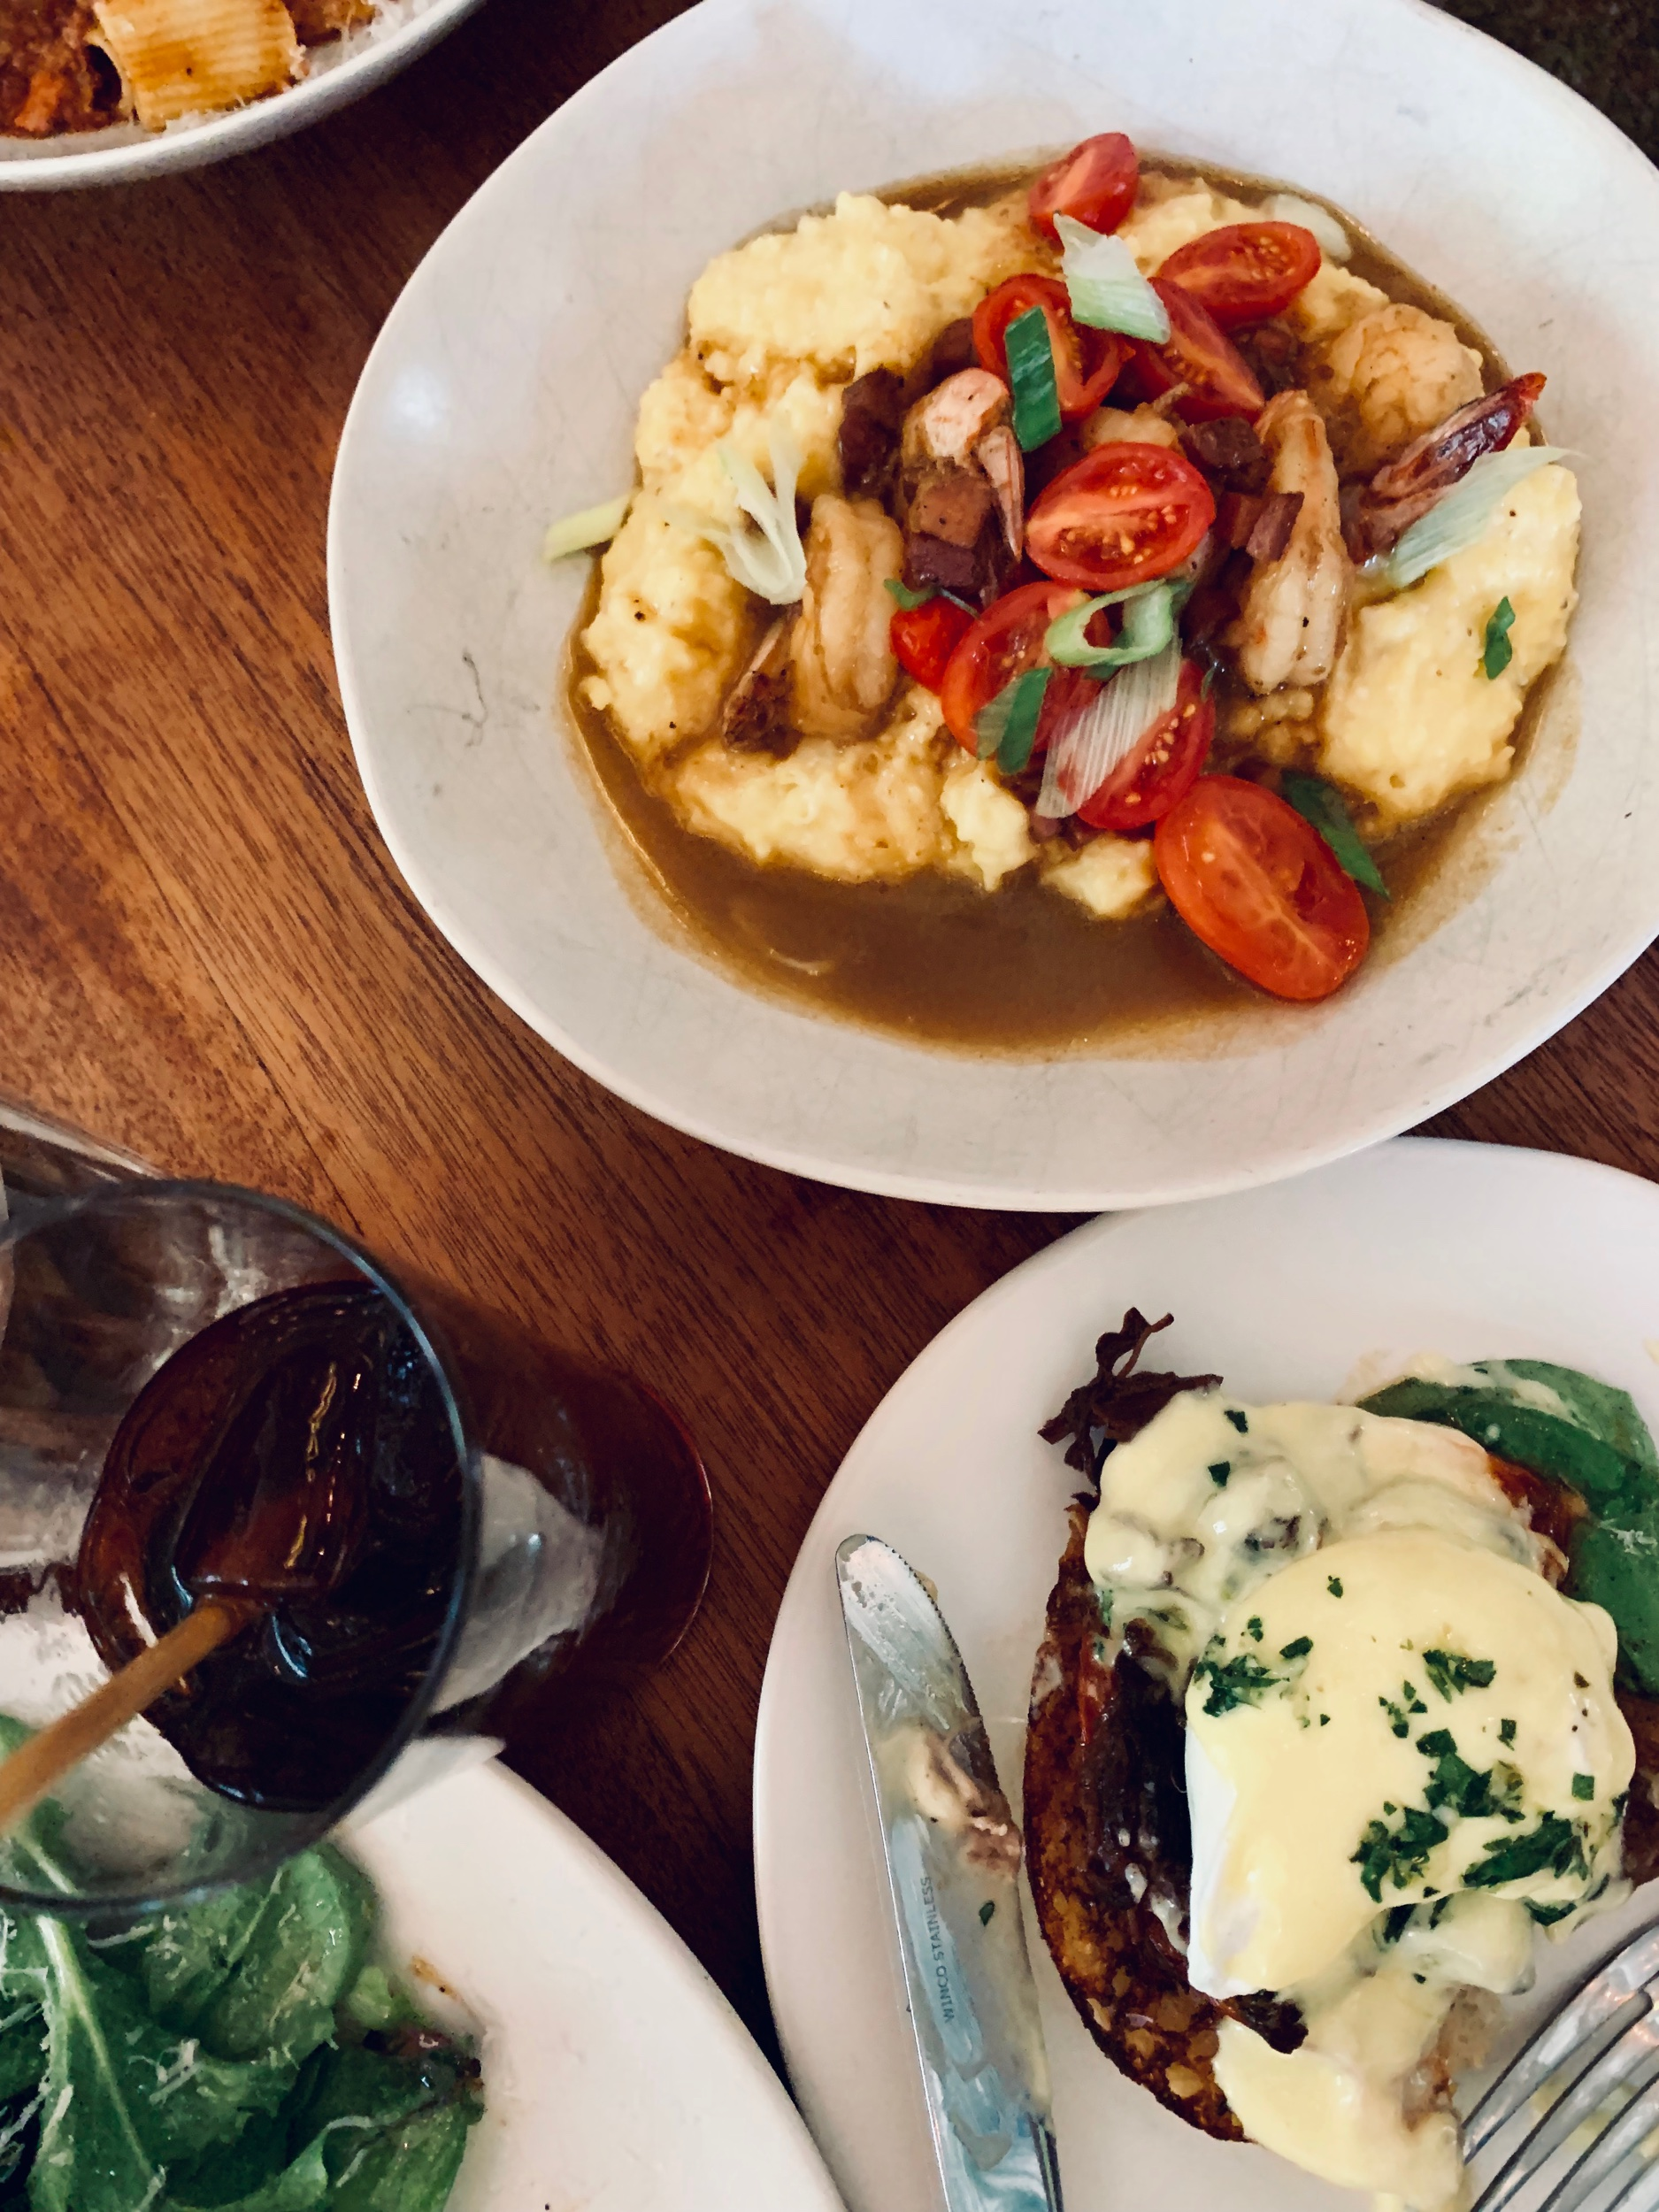 Brunch at Josephine Estelle - Order the shrimp and grits, Eggs Benedict, and pastry plate.